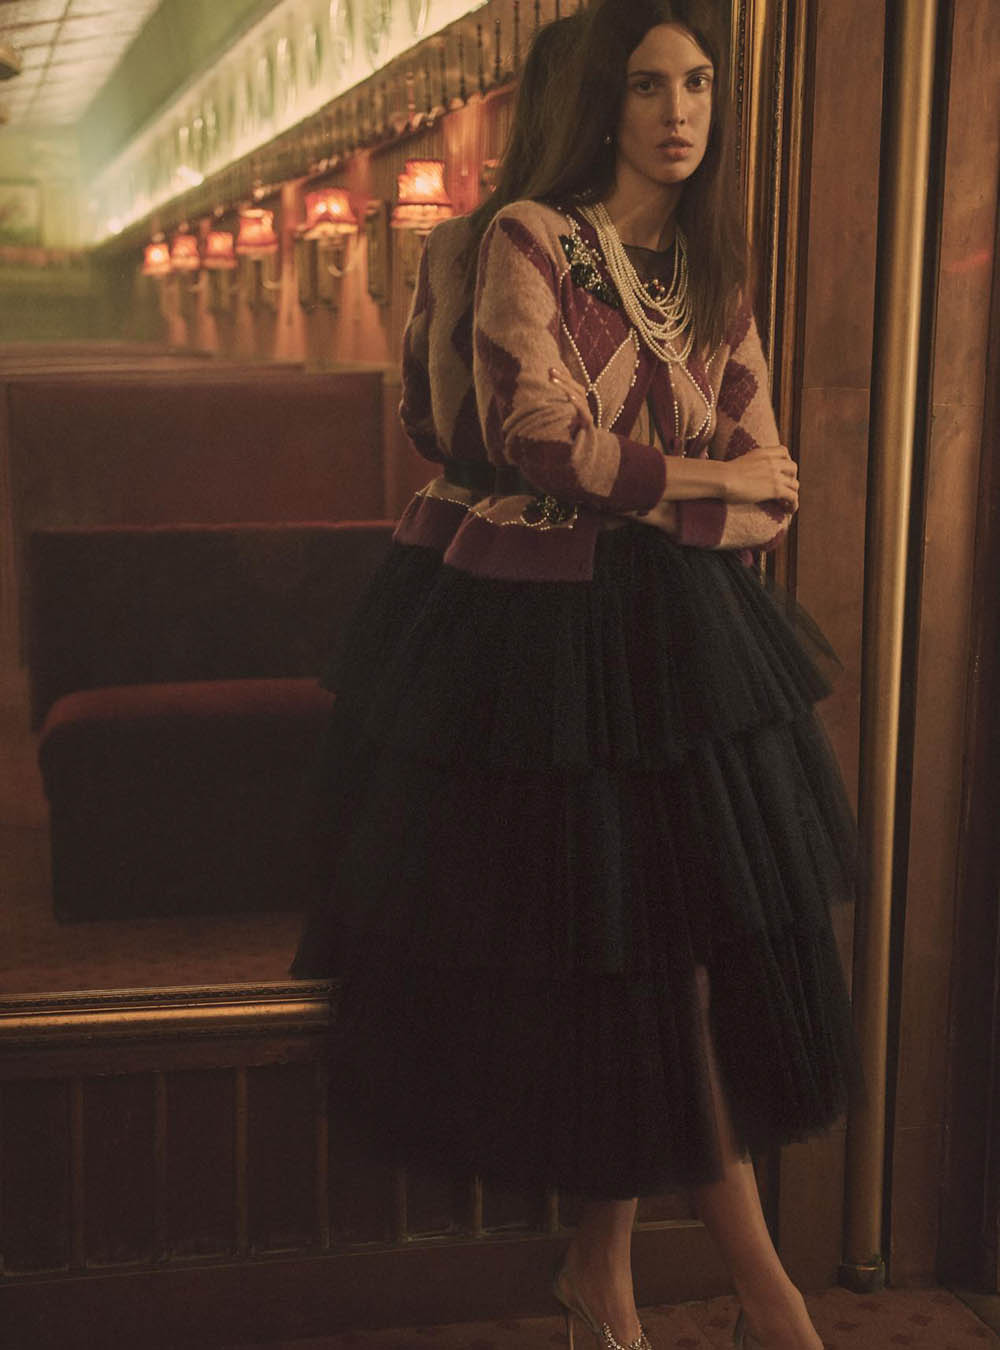 Ruby Aldridge by Regan Cameron for Harper's Bazaar UK April 2018